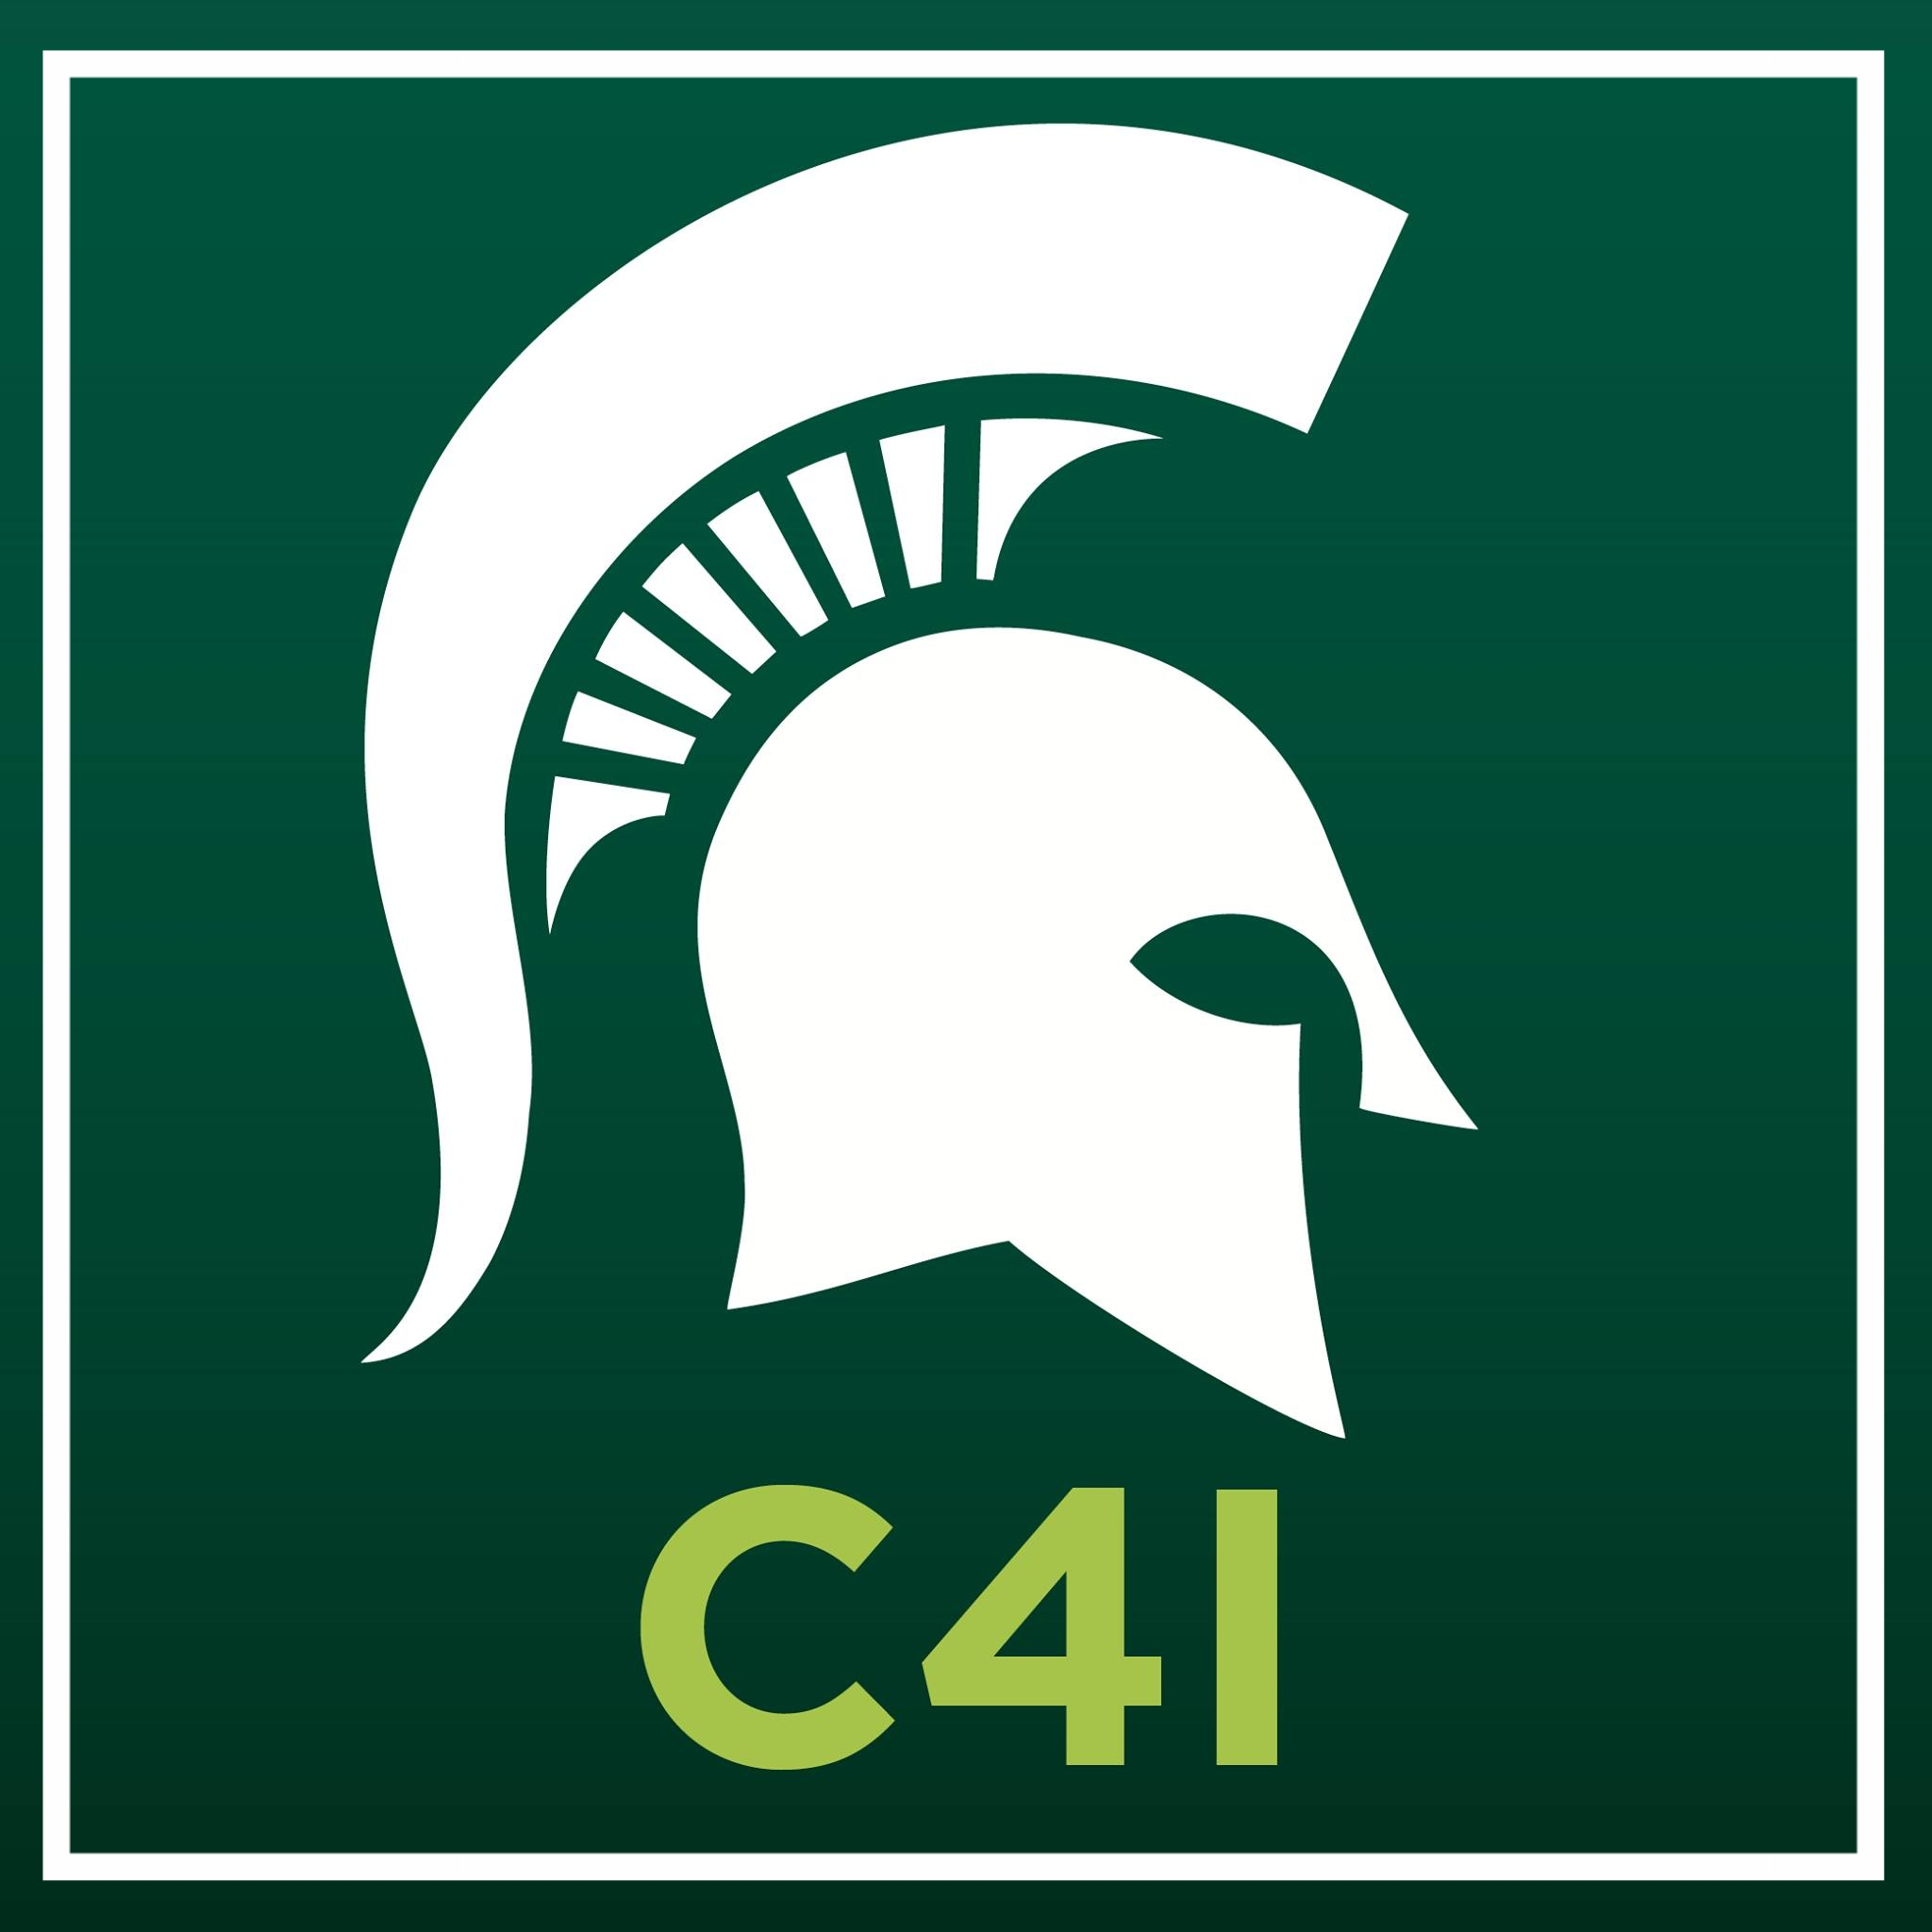 Postdoctoral Researcher in the Center for Interdisciplinarity at Michigan State university.  Click here for CV.